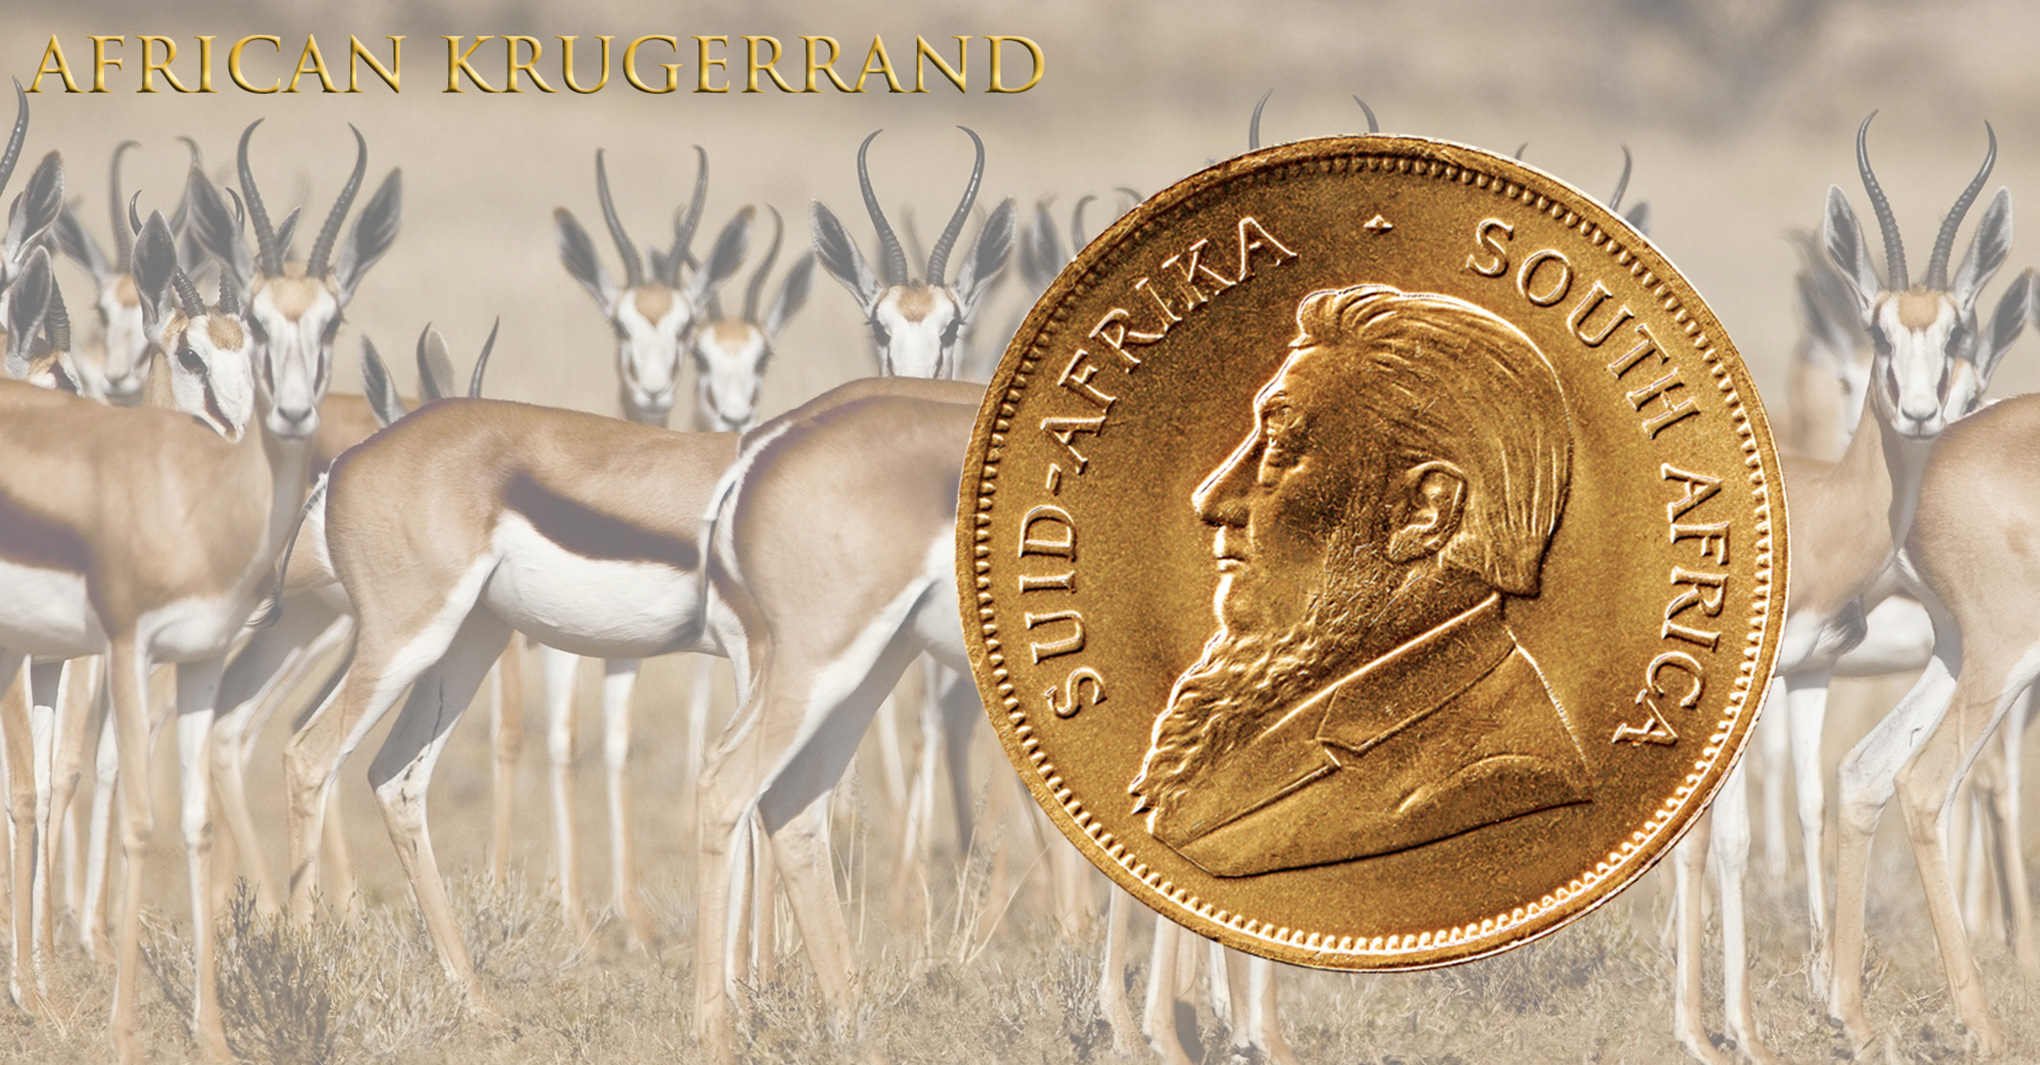 Gold Krugerrand South Bay Gold - Los Angeles - 310 791 5431